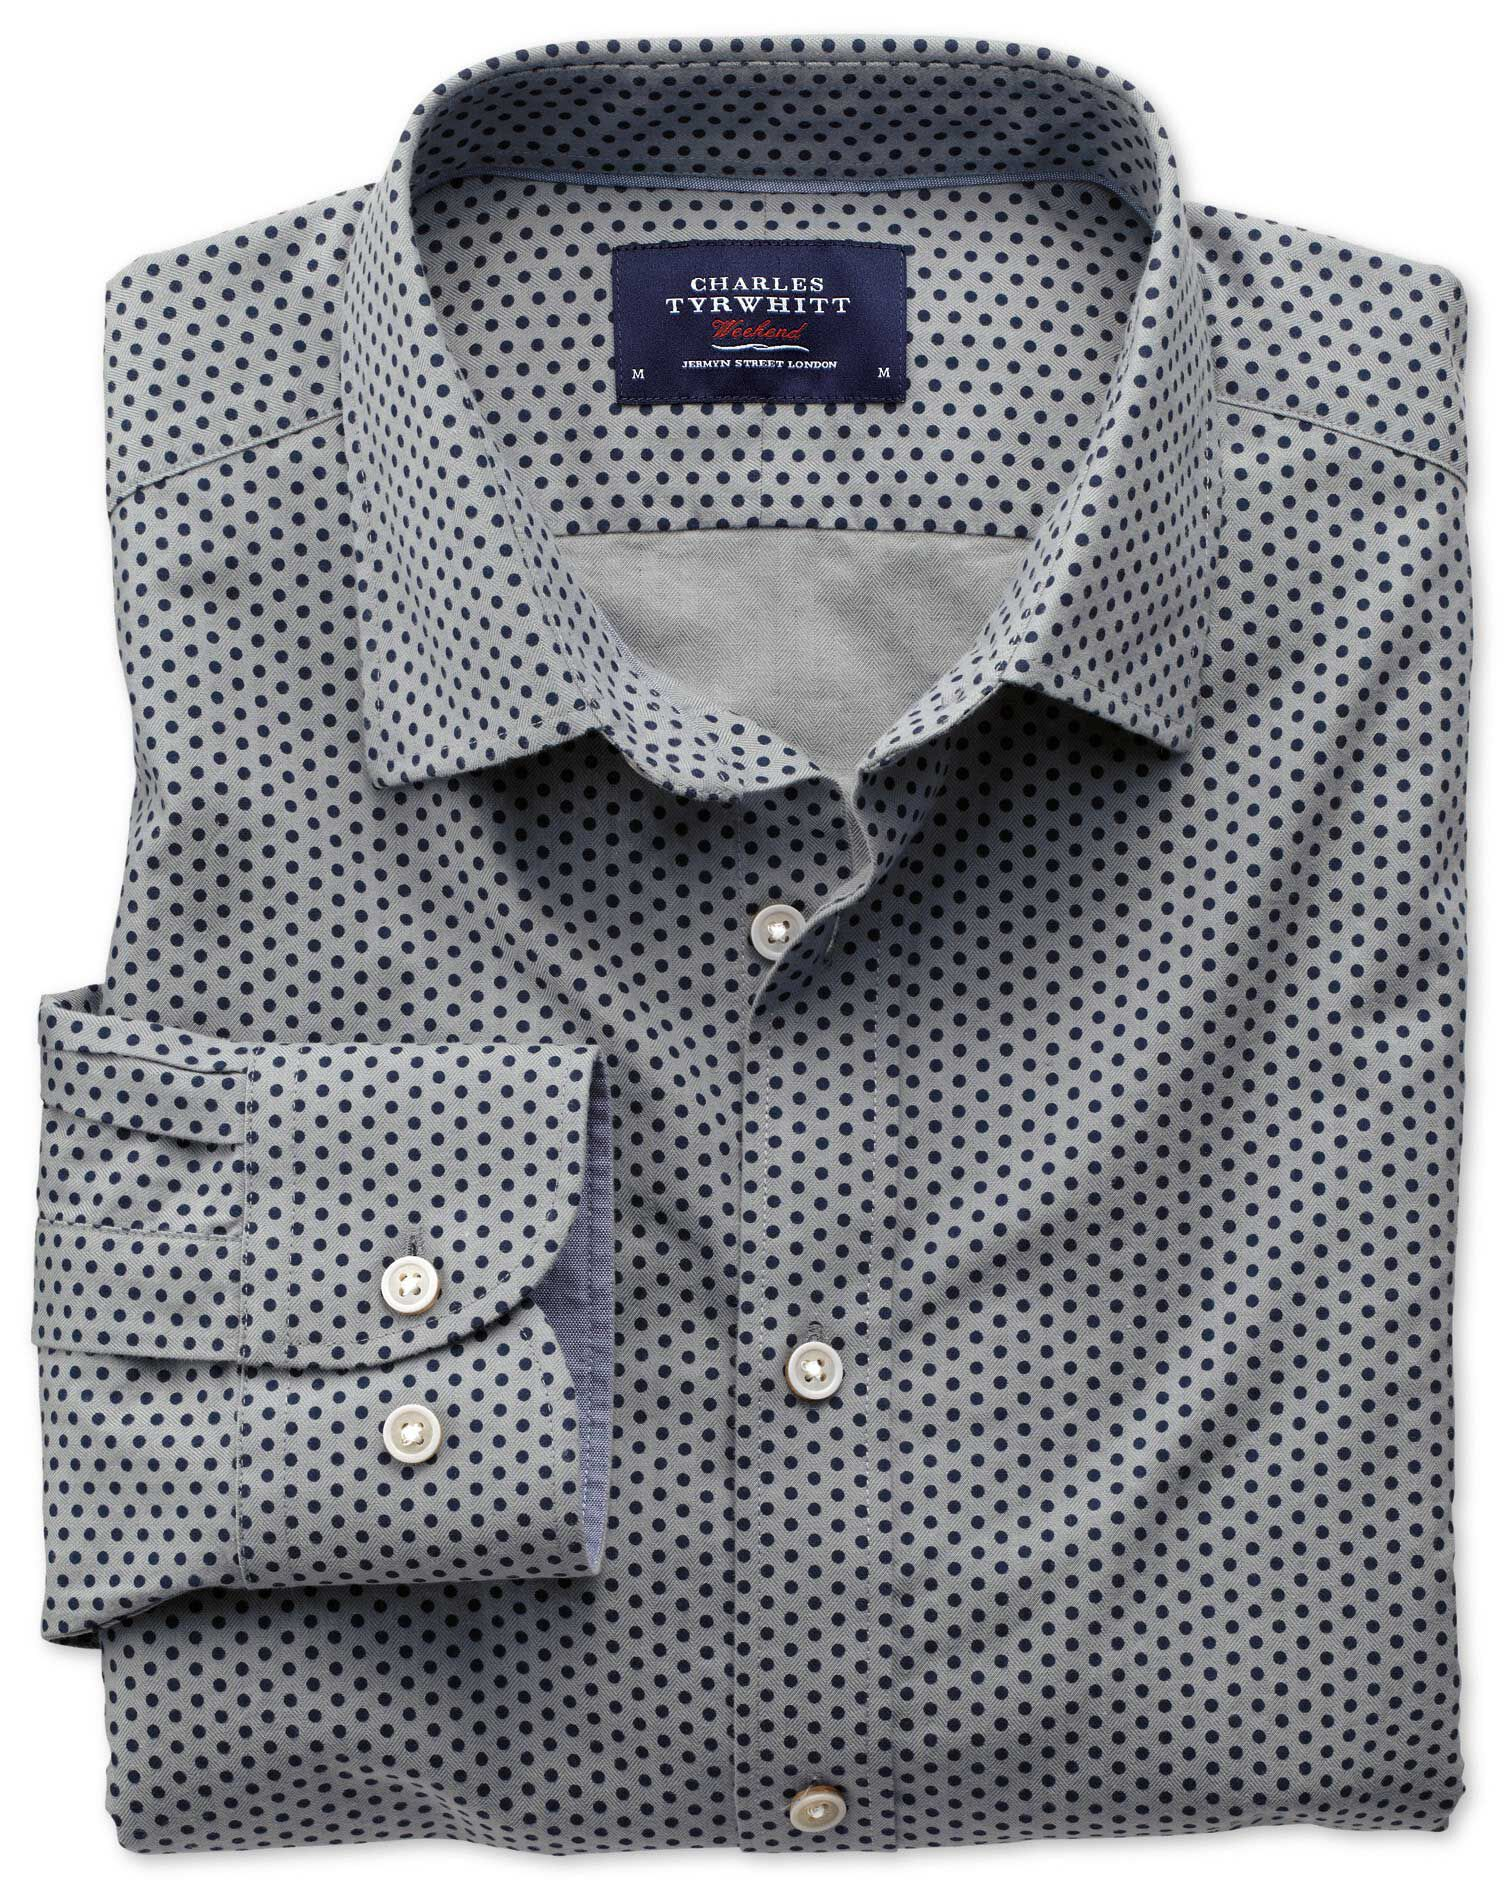 Extra Slim Fit Navy and Grey Spot Print Cotton Shirt Single Cuff Size XS by Charles Tyrwhitt